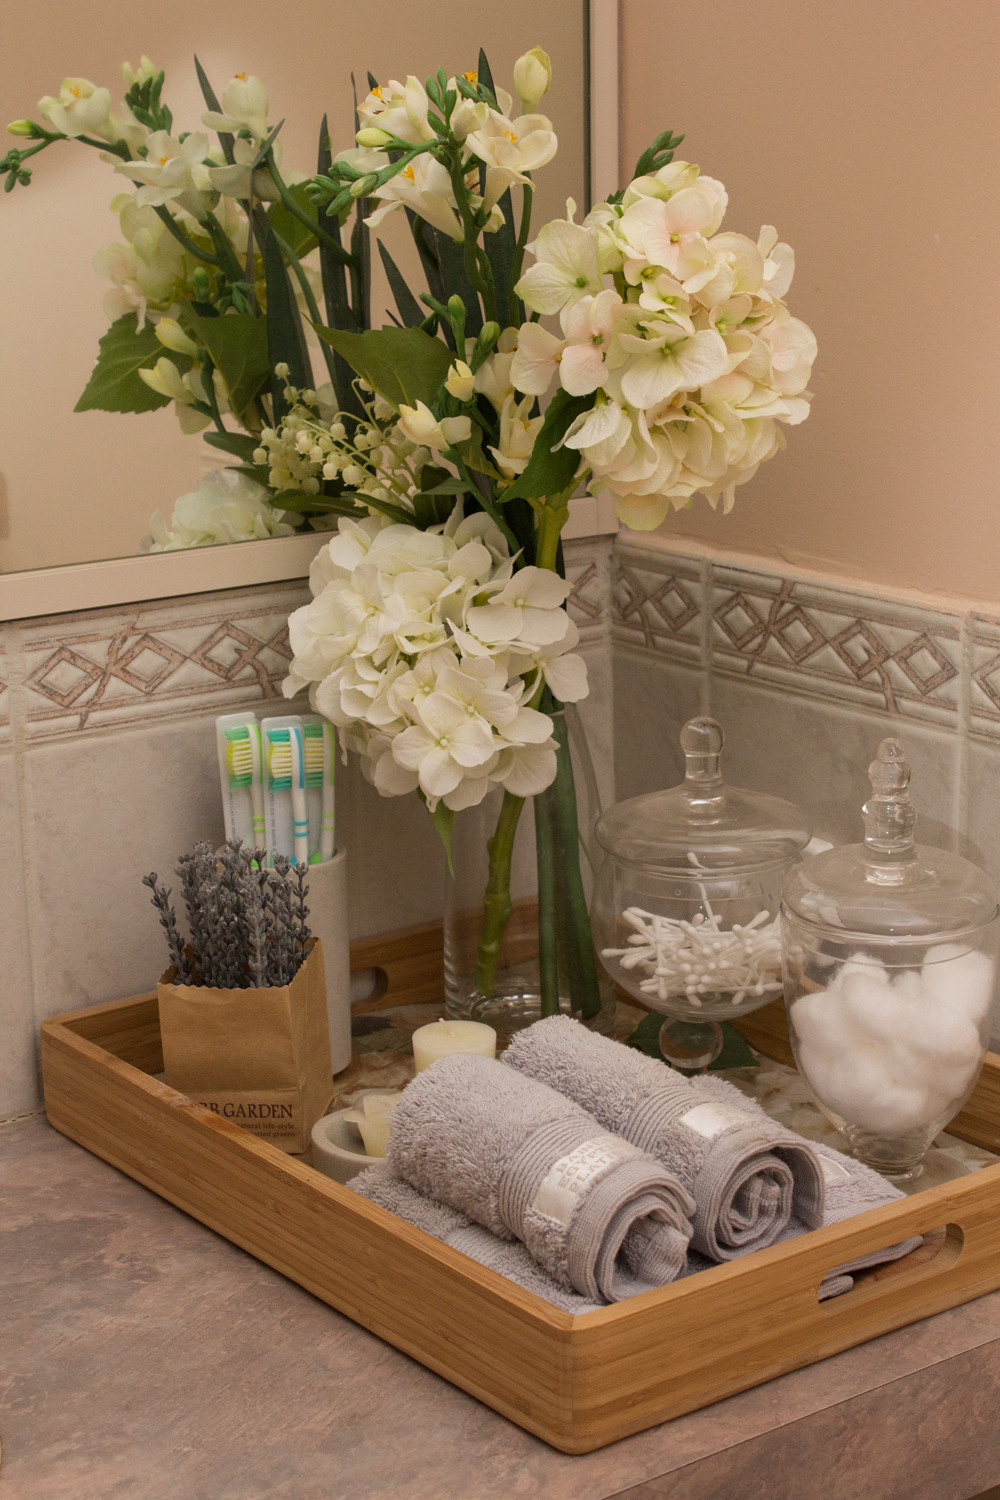 Decorating Bathroom Countertops Inspirational Bathroom Countertop Storage solutions with Aesthetic Charm